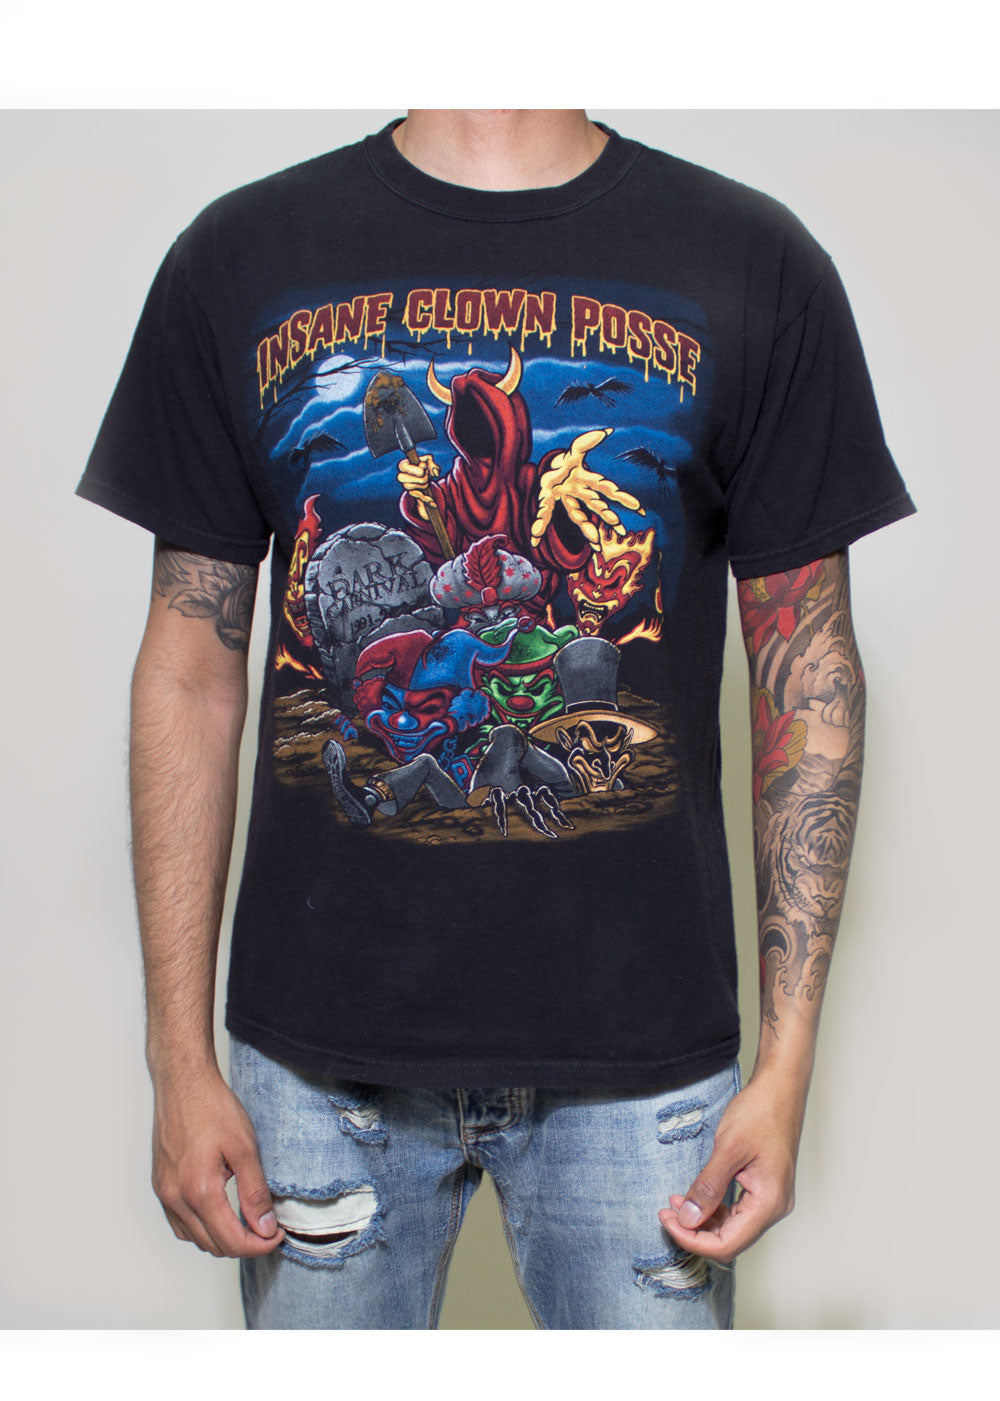 Insane Clown Posse Graphic Tee